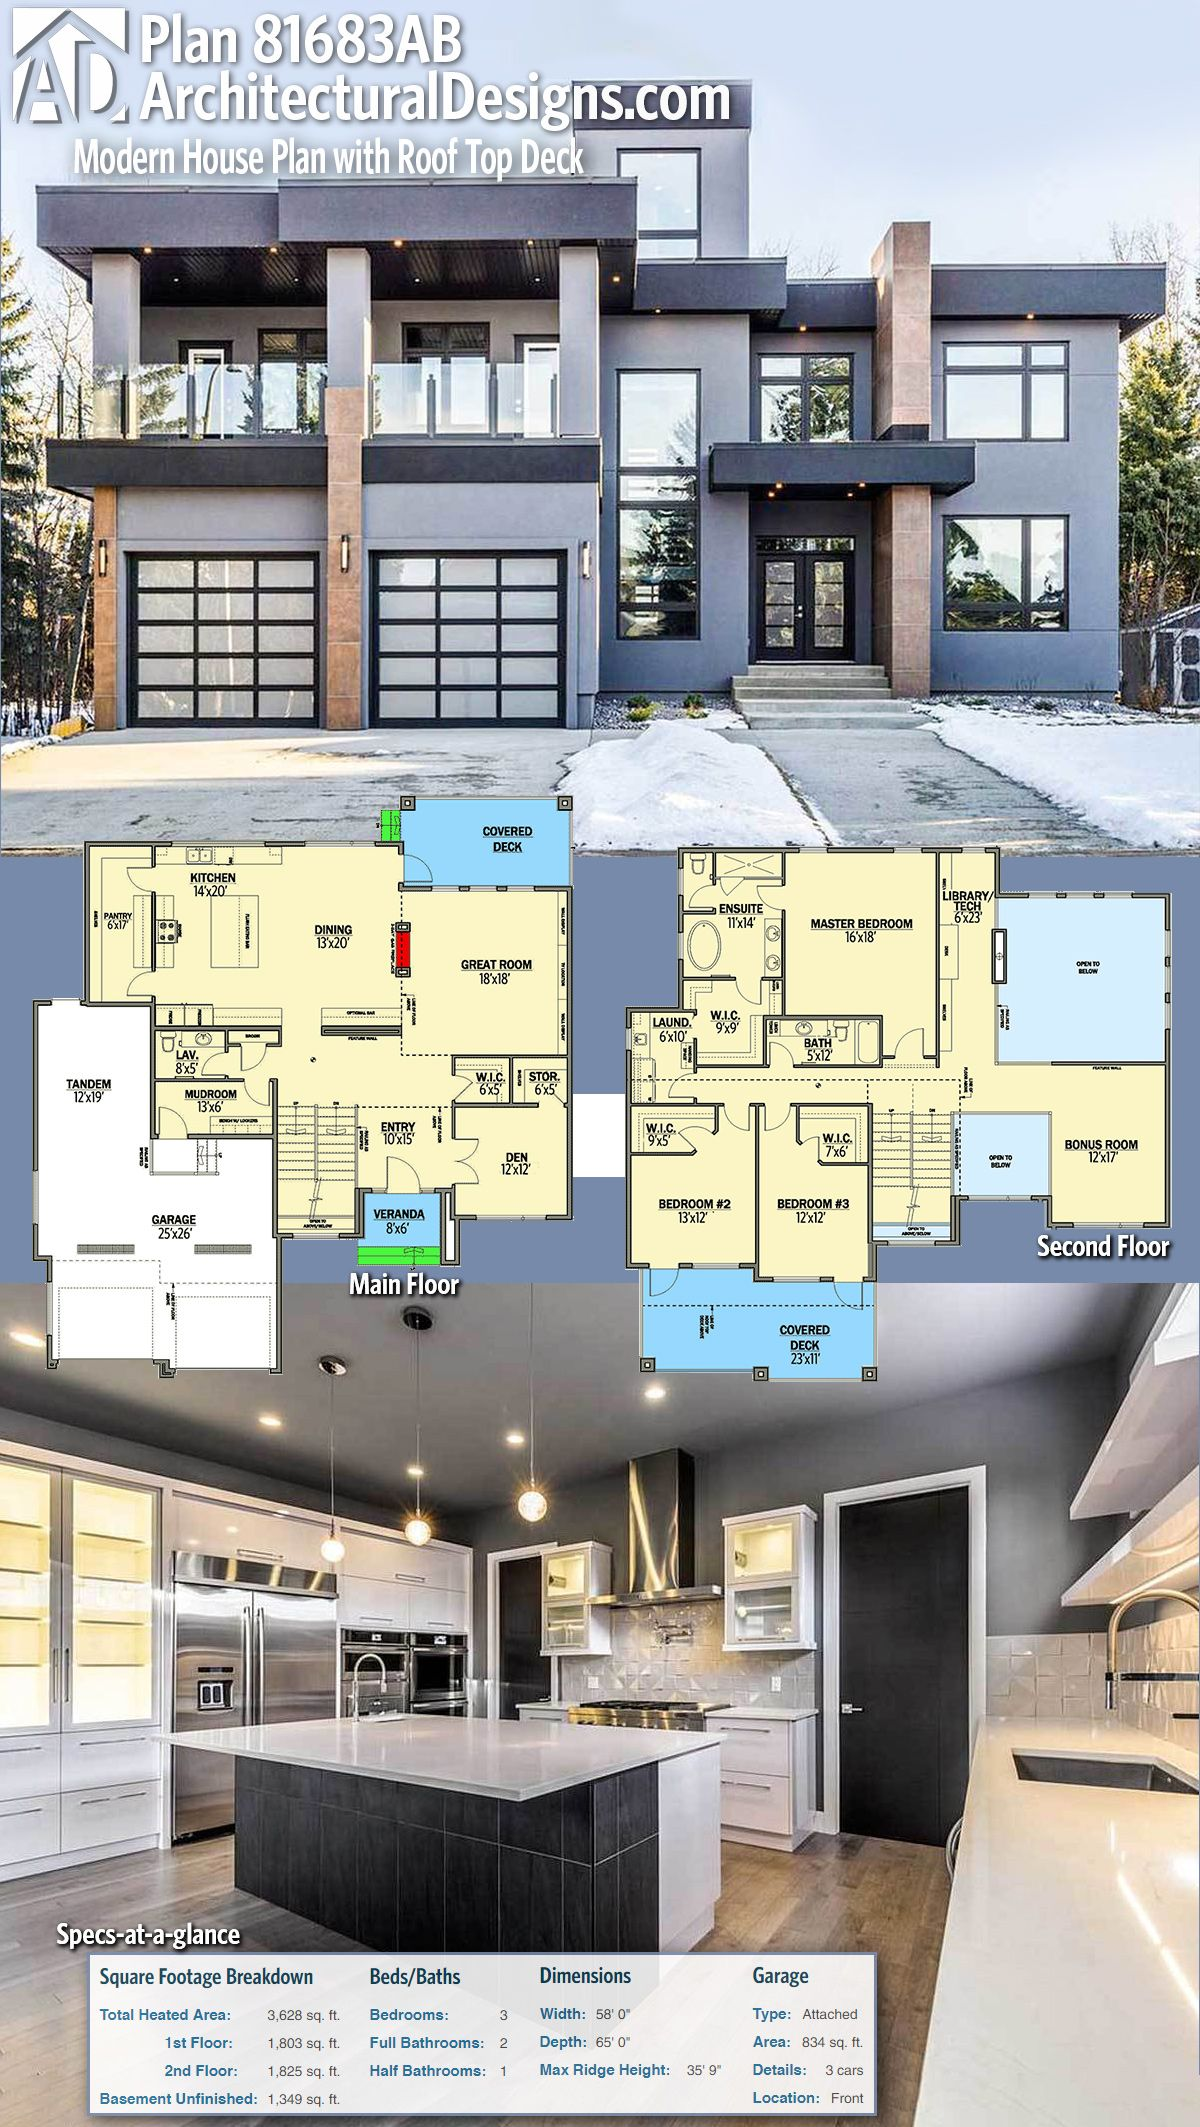 Plan 81683ab Modern House Plan With Roof Top Deck Modern House Floor Plans House Plans Modern House Plan